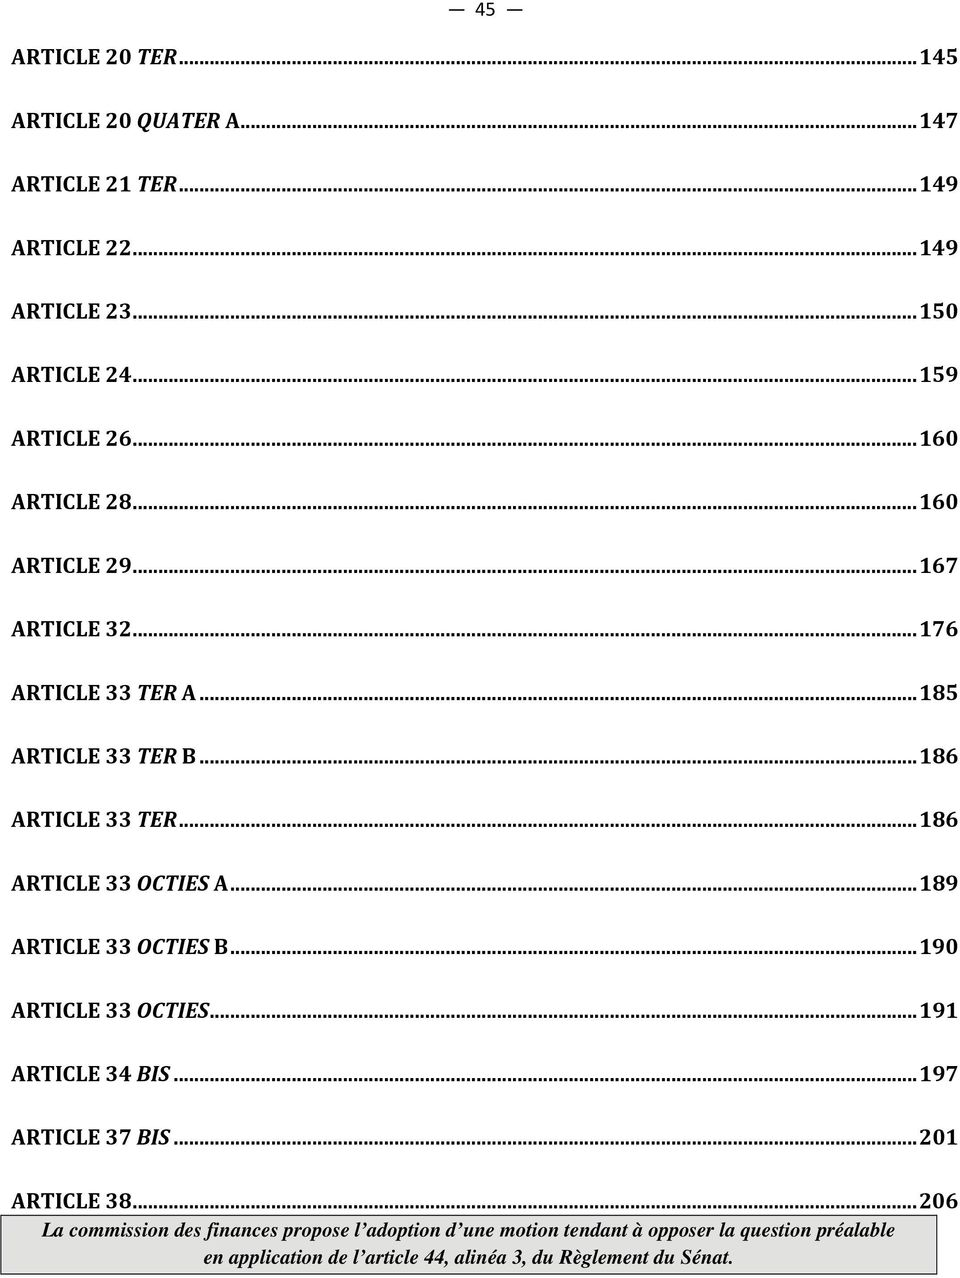 .. 176 ARTICLE 33 TER A... 185 ARTICLE 33 TER B... 186 ARTICLE 33 TER... 186 ARTICLE 33 OCTIES A.